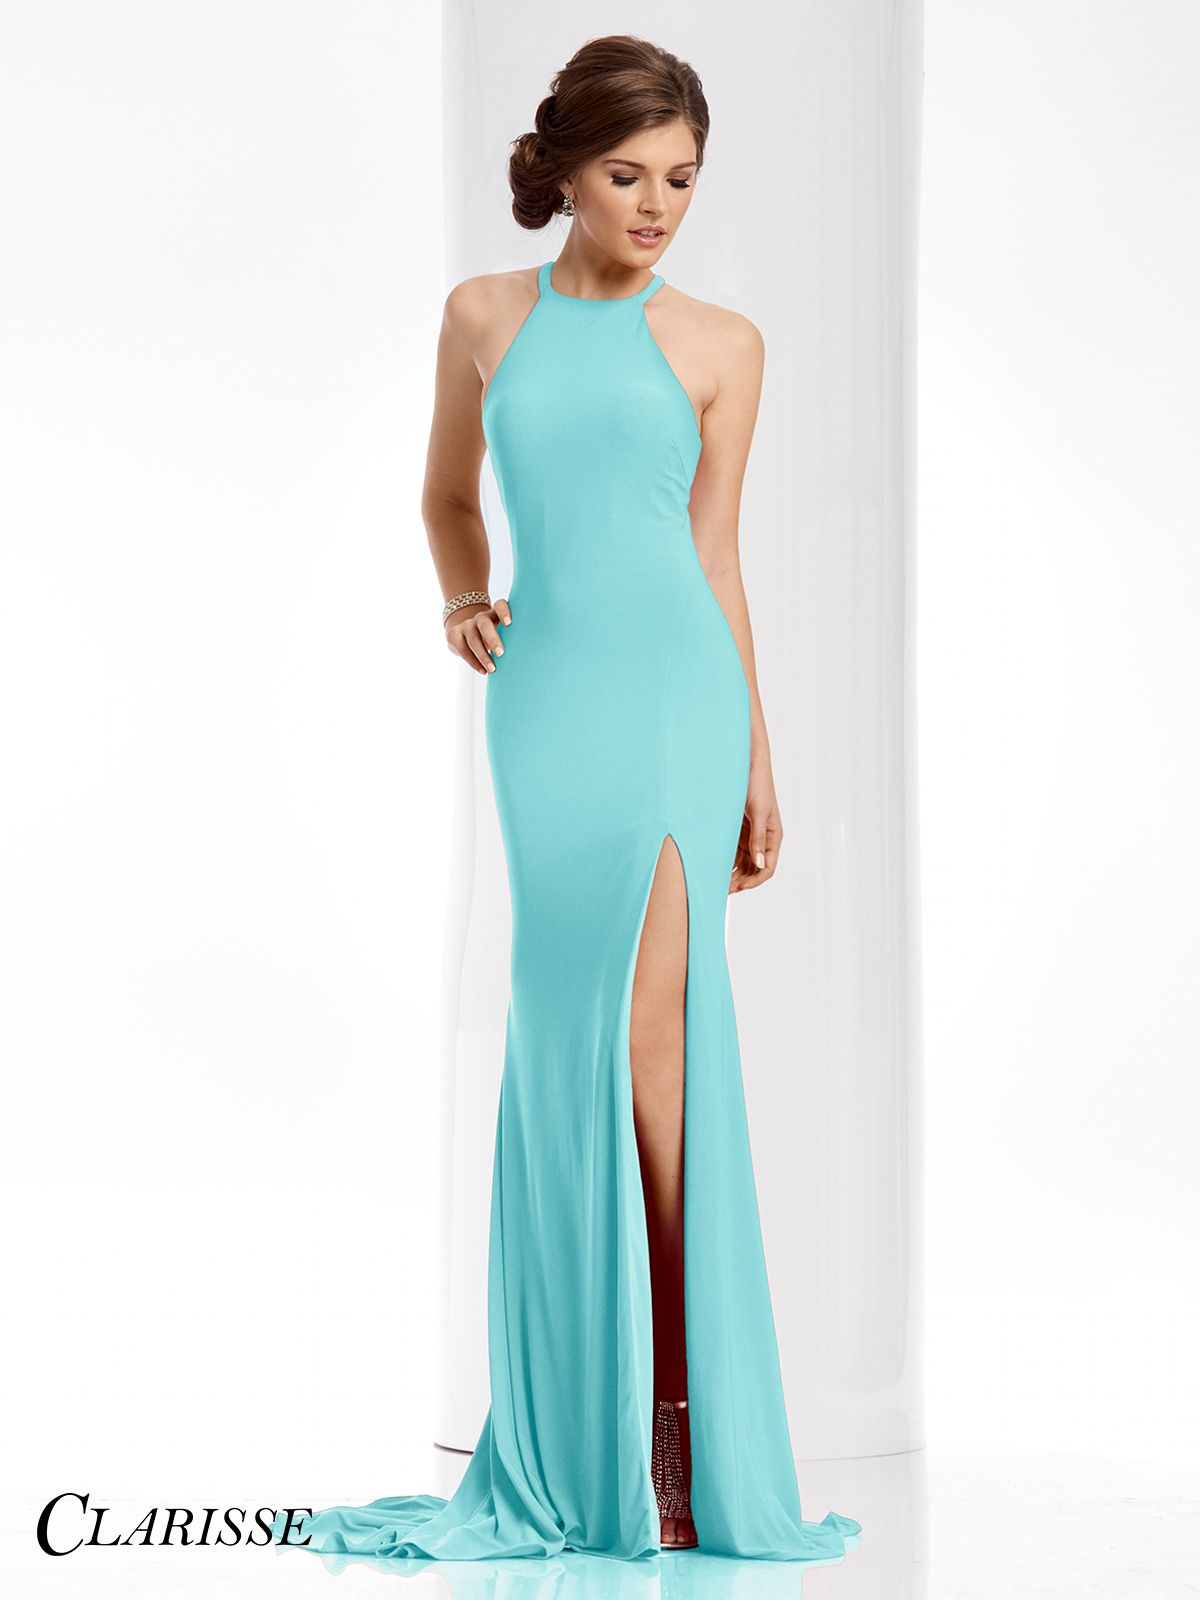 Clarisse Prom Dress 3106. A simple fitted dress featuring a halter ...